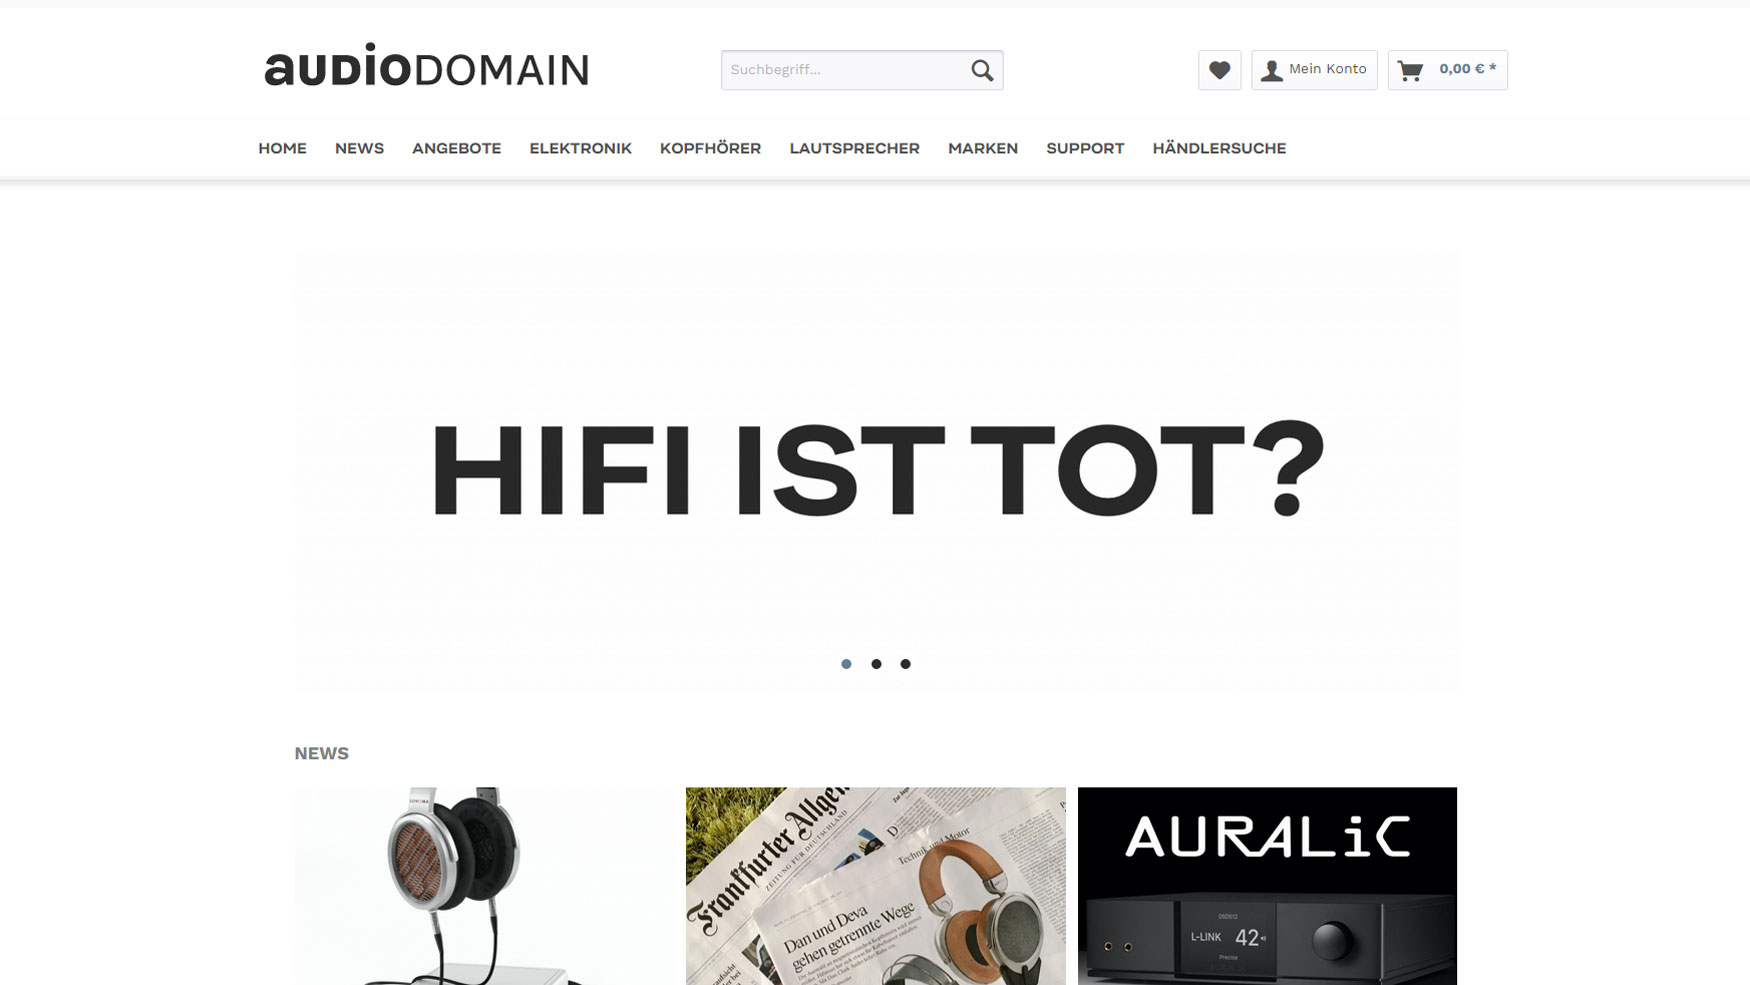 Neue audioDOMAIN-Seite (Screenshot von https://www.audiodomain.de/)